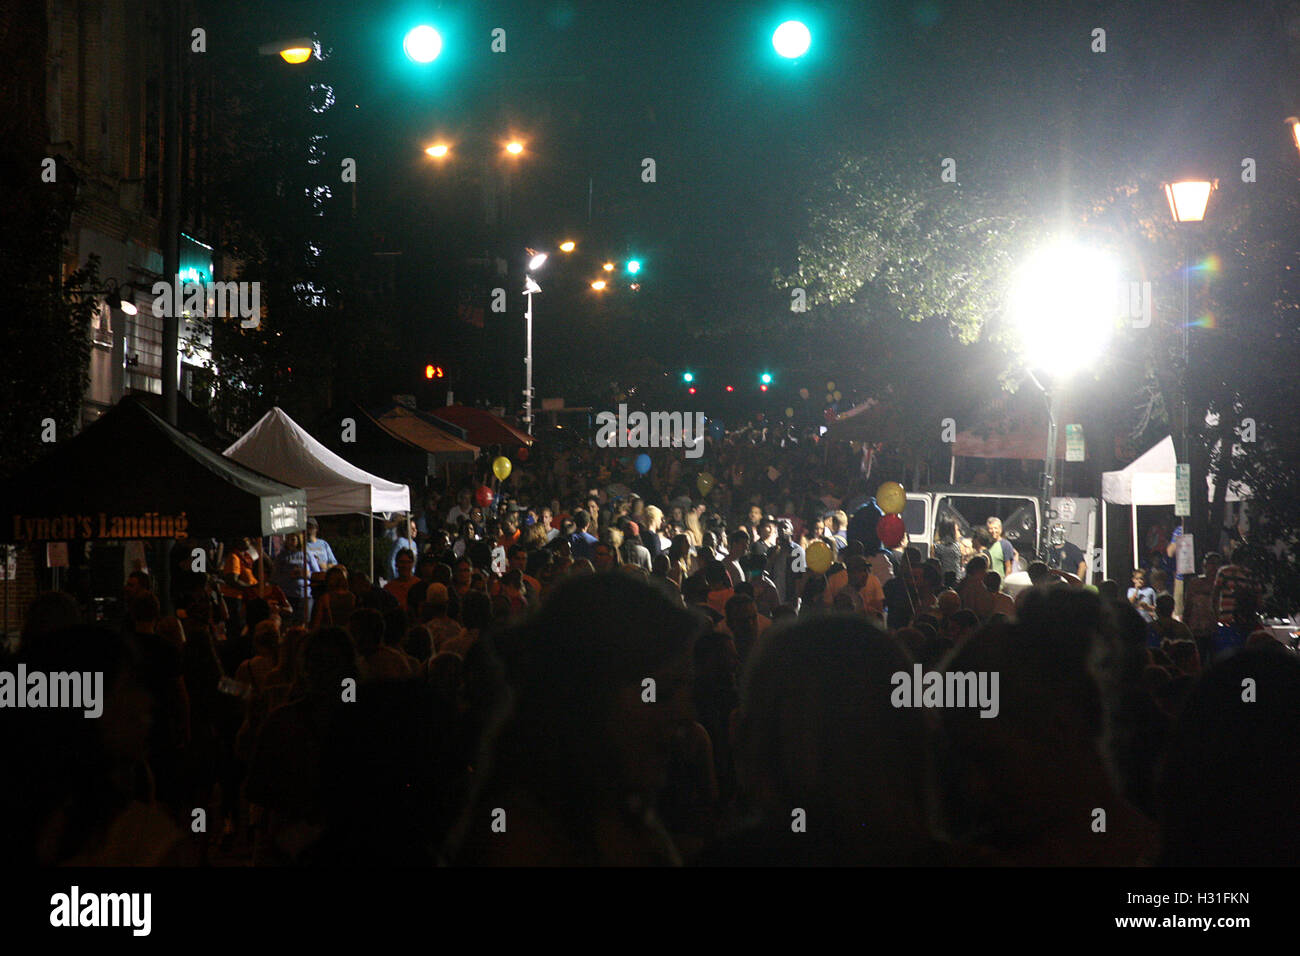 Crowd gathered at city event at night Stock Photo